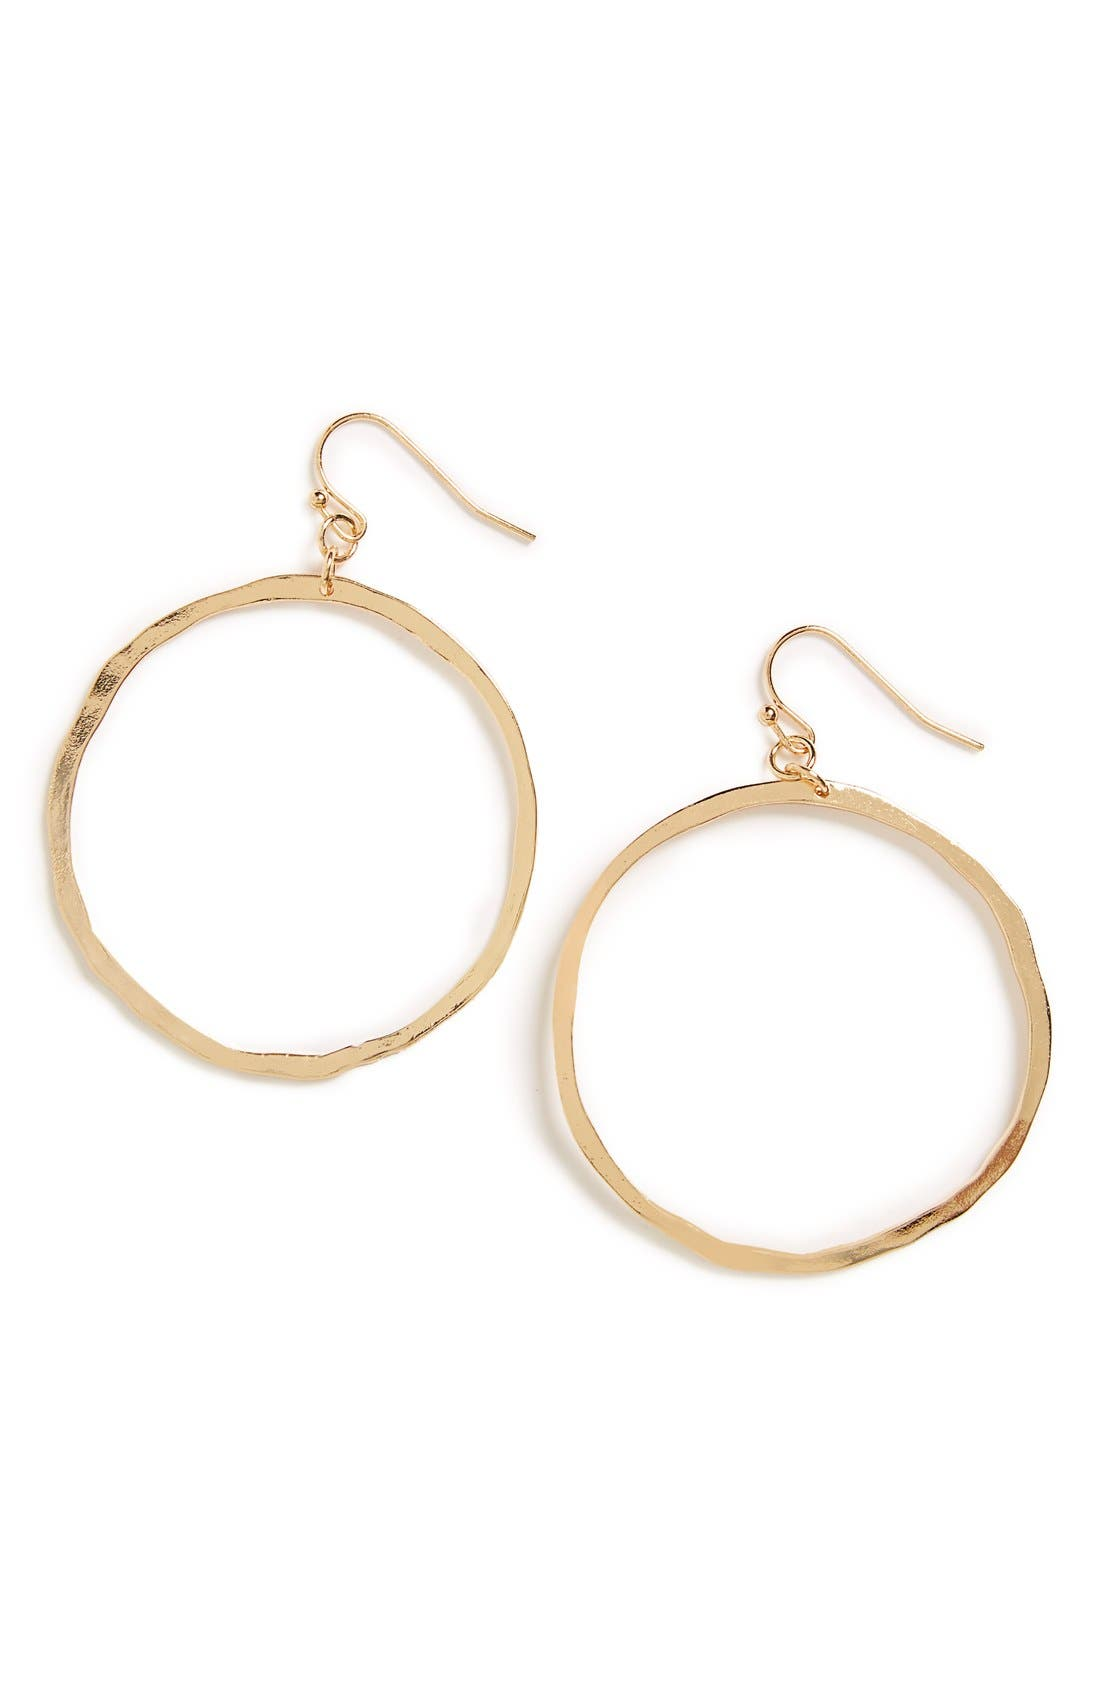 Alternate Image 1 Selected - BP. Hammered Circle Earrings